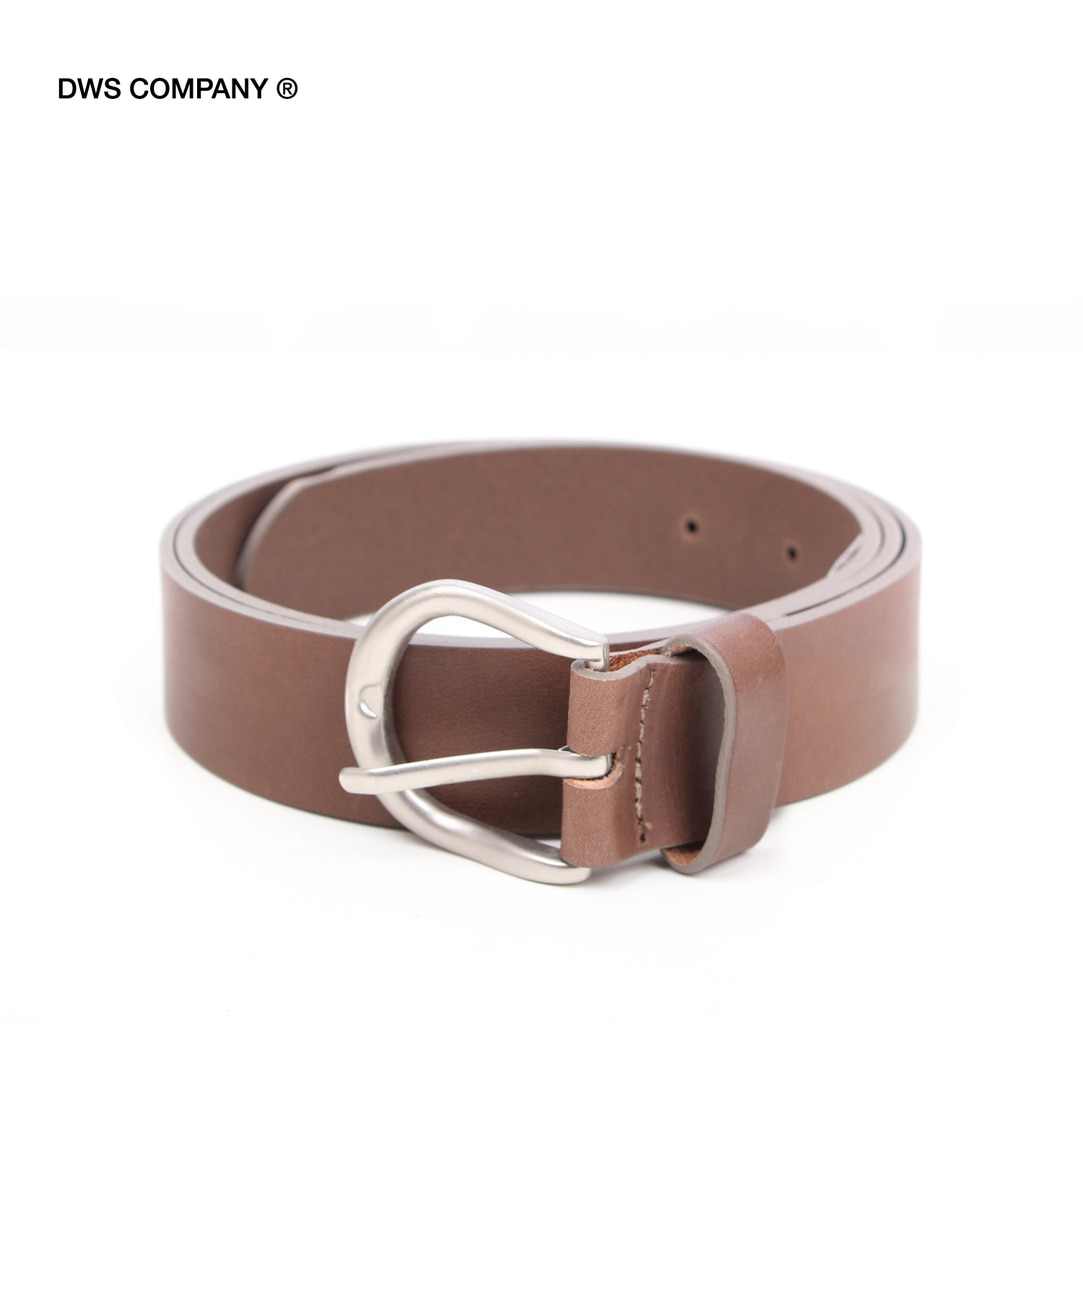 DWS BASIC LEATHER BELT(MOCHA)